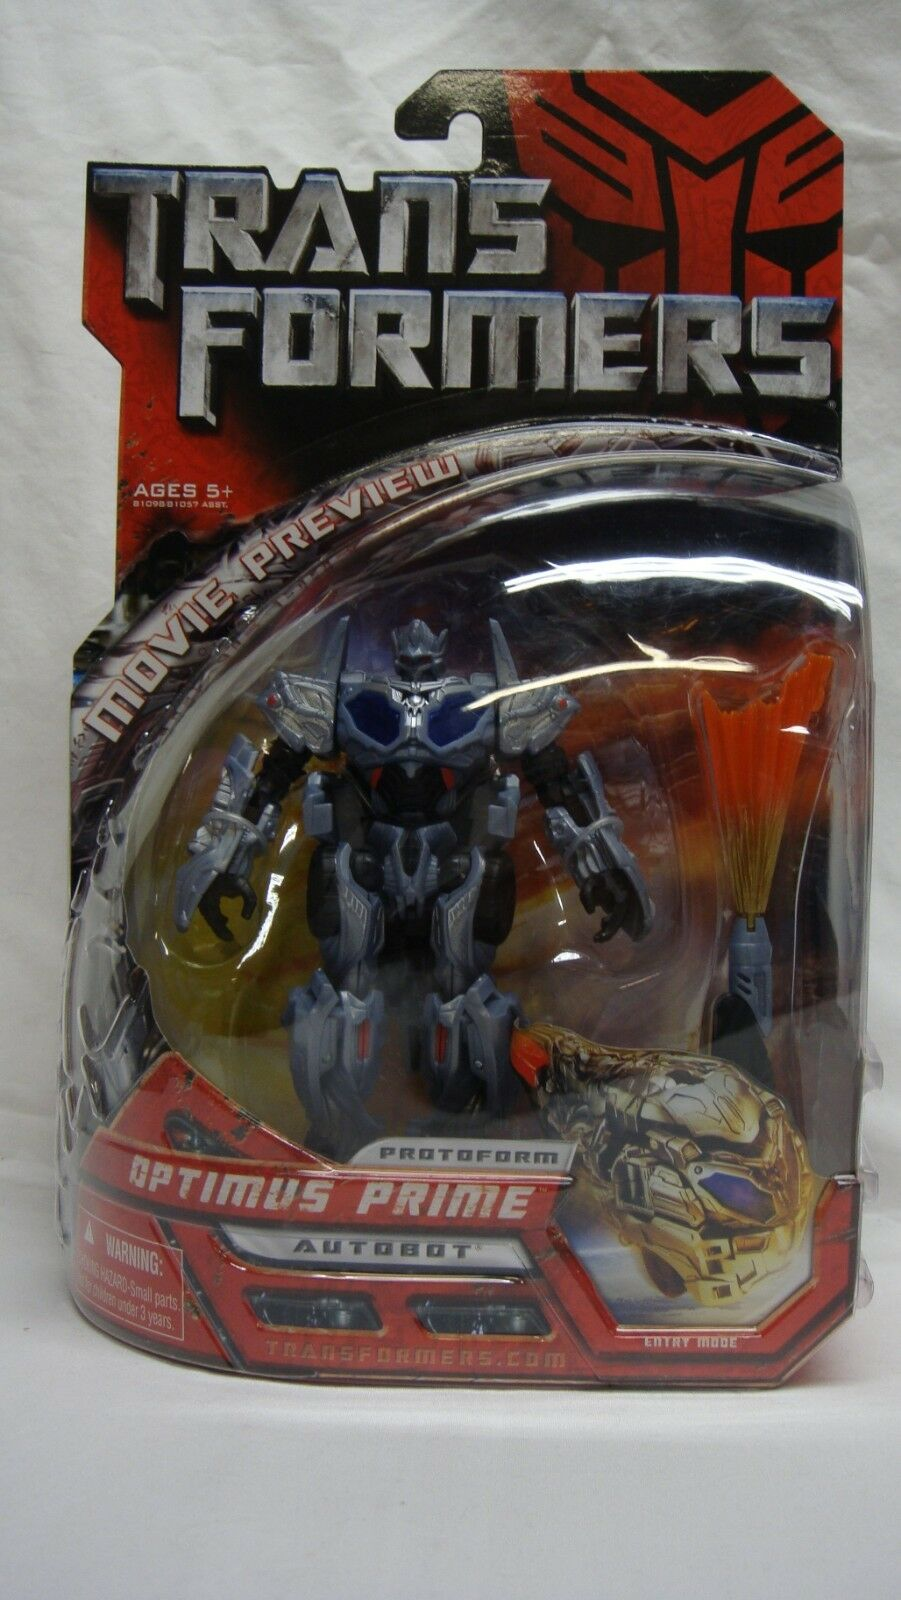 TRANSFORMERS MOVIE PREVIEW AUTOBOT OPTIMUS PRIME PredOFORM DELUXE CLASS NEW